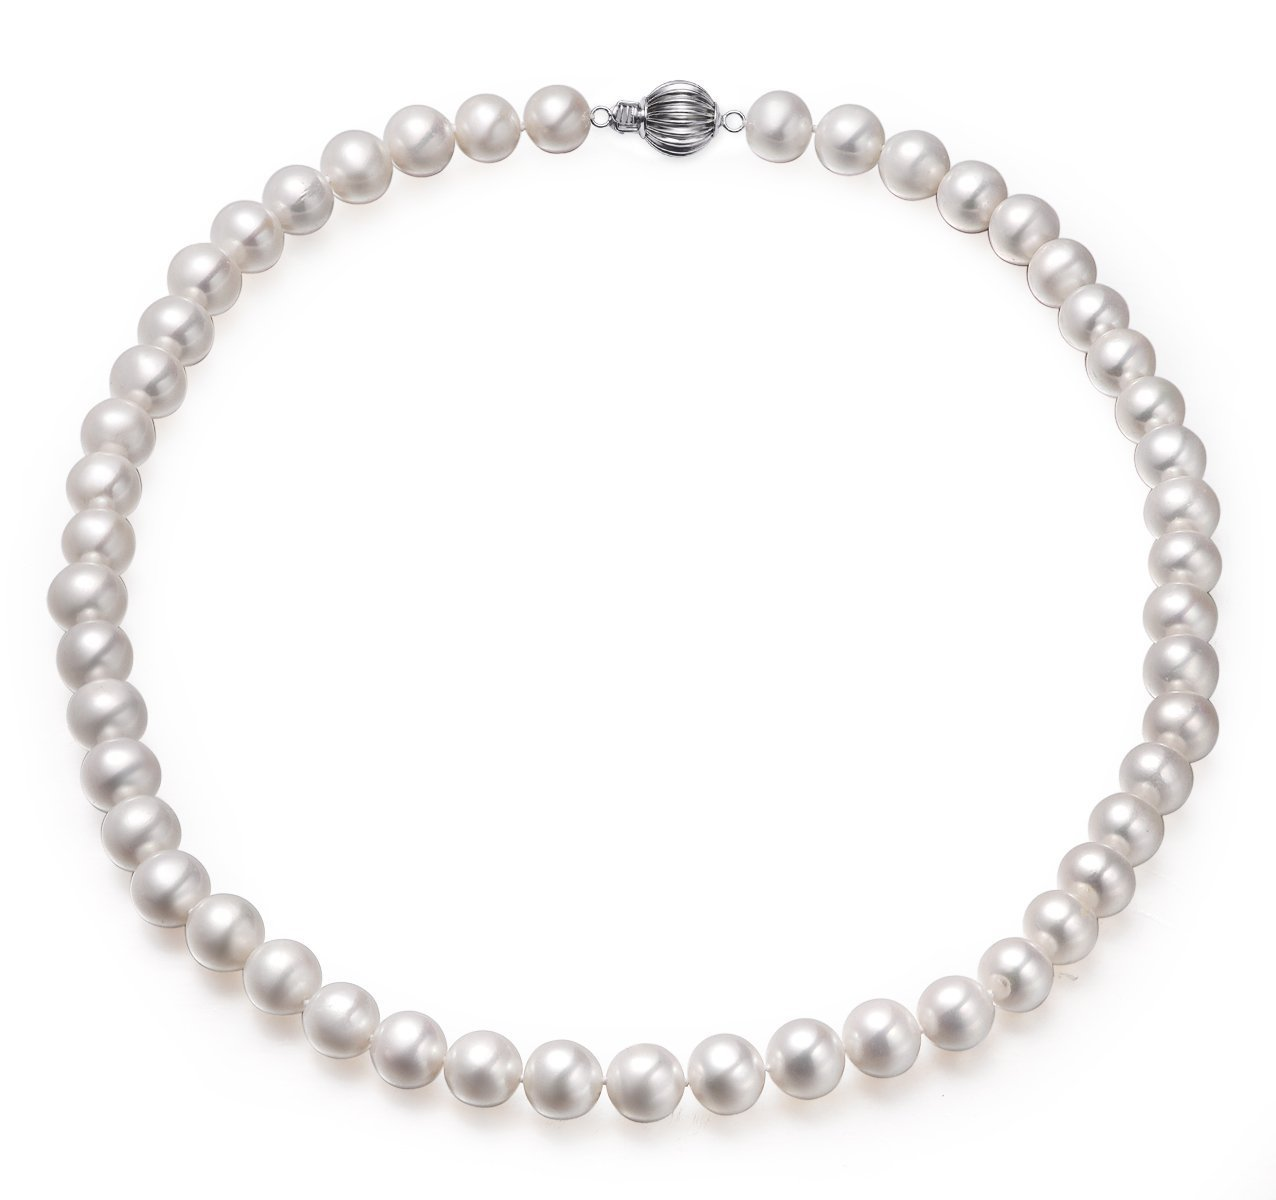 the chloe collection, aaaa+, 7.5-8mm single strand white cultured freshwater pearl necklace with 14k white gold ball clasp